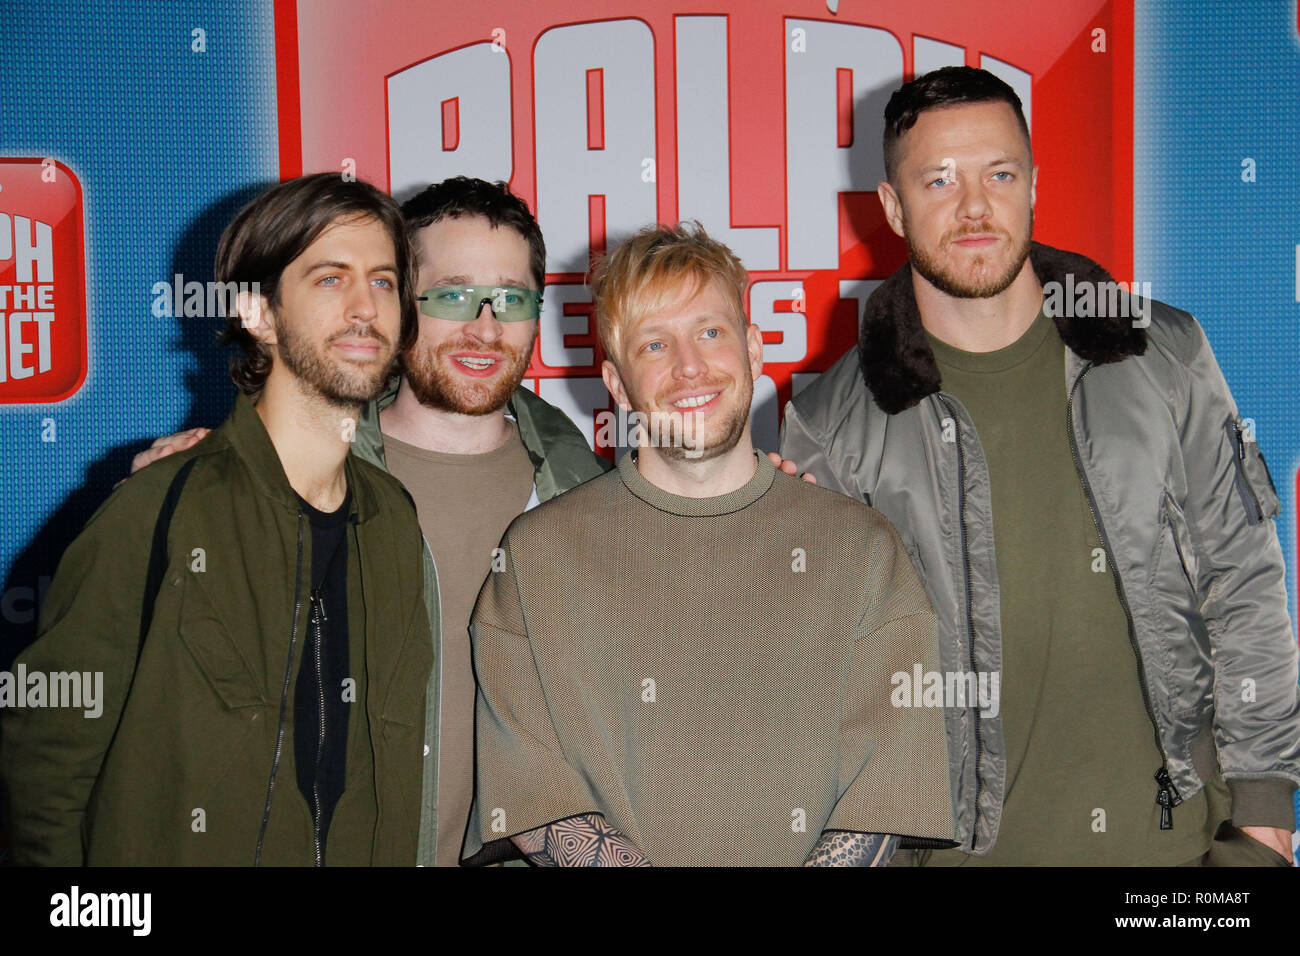 Los Angeles, USA. 5th Nov 2018. Imagine Dragons at the World Premiere of Disney's 'Ralph Breaks The Internet' held at El Capitan Theatre in Hollywood, CA, November 5, 2018. Photo by Joseph Martinez / PictureLux Credit: PictureLux / The Hollywood Archive/Alamy Live News - Stock Image